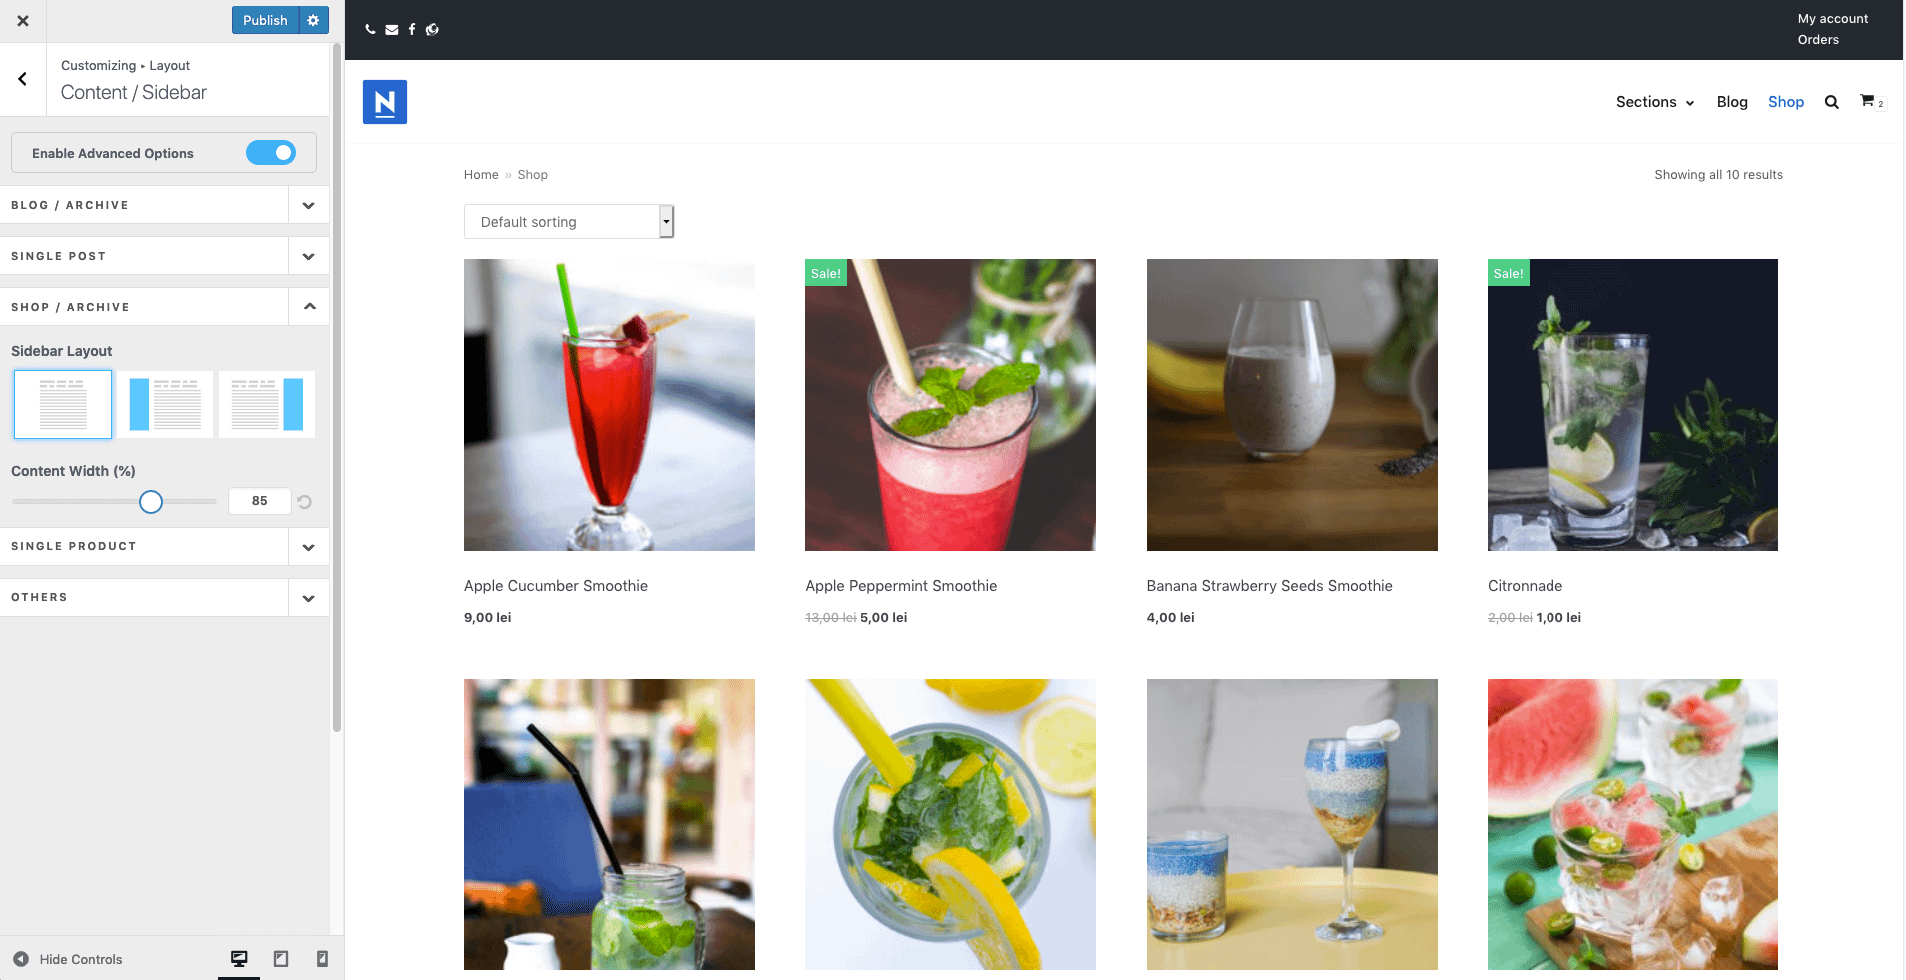 Experiment with the shop layouts to improve your conversions